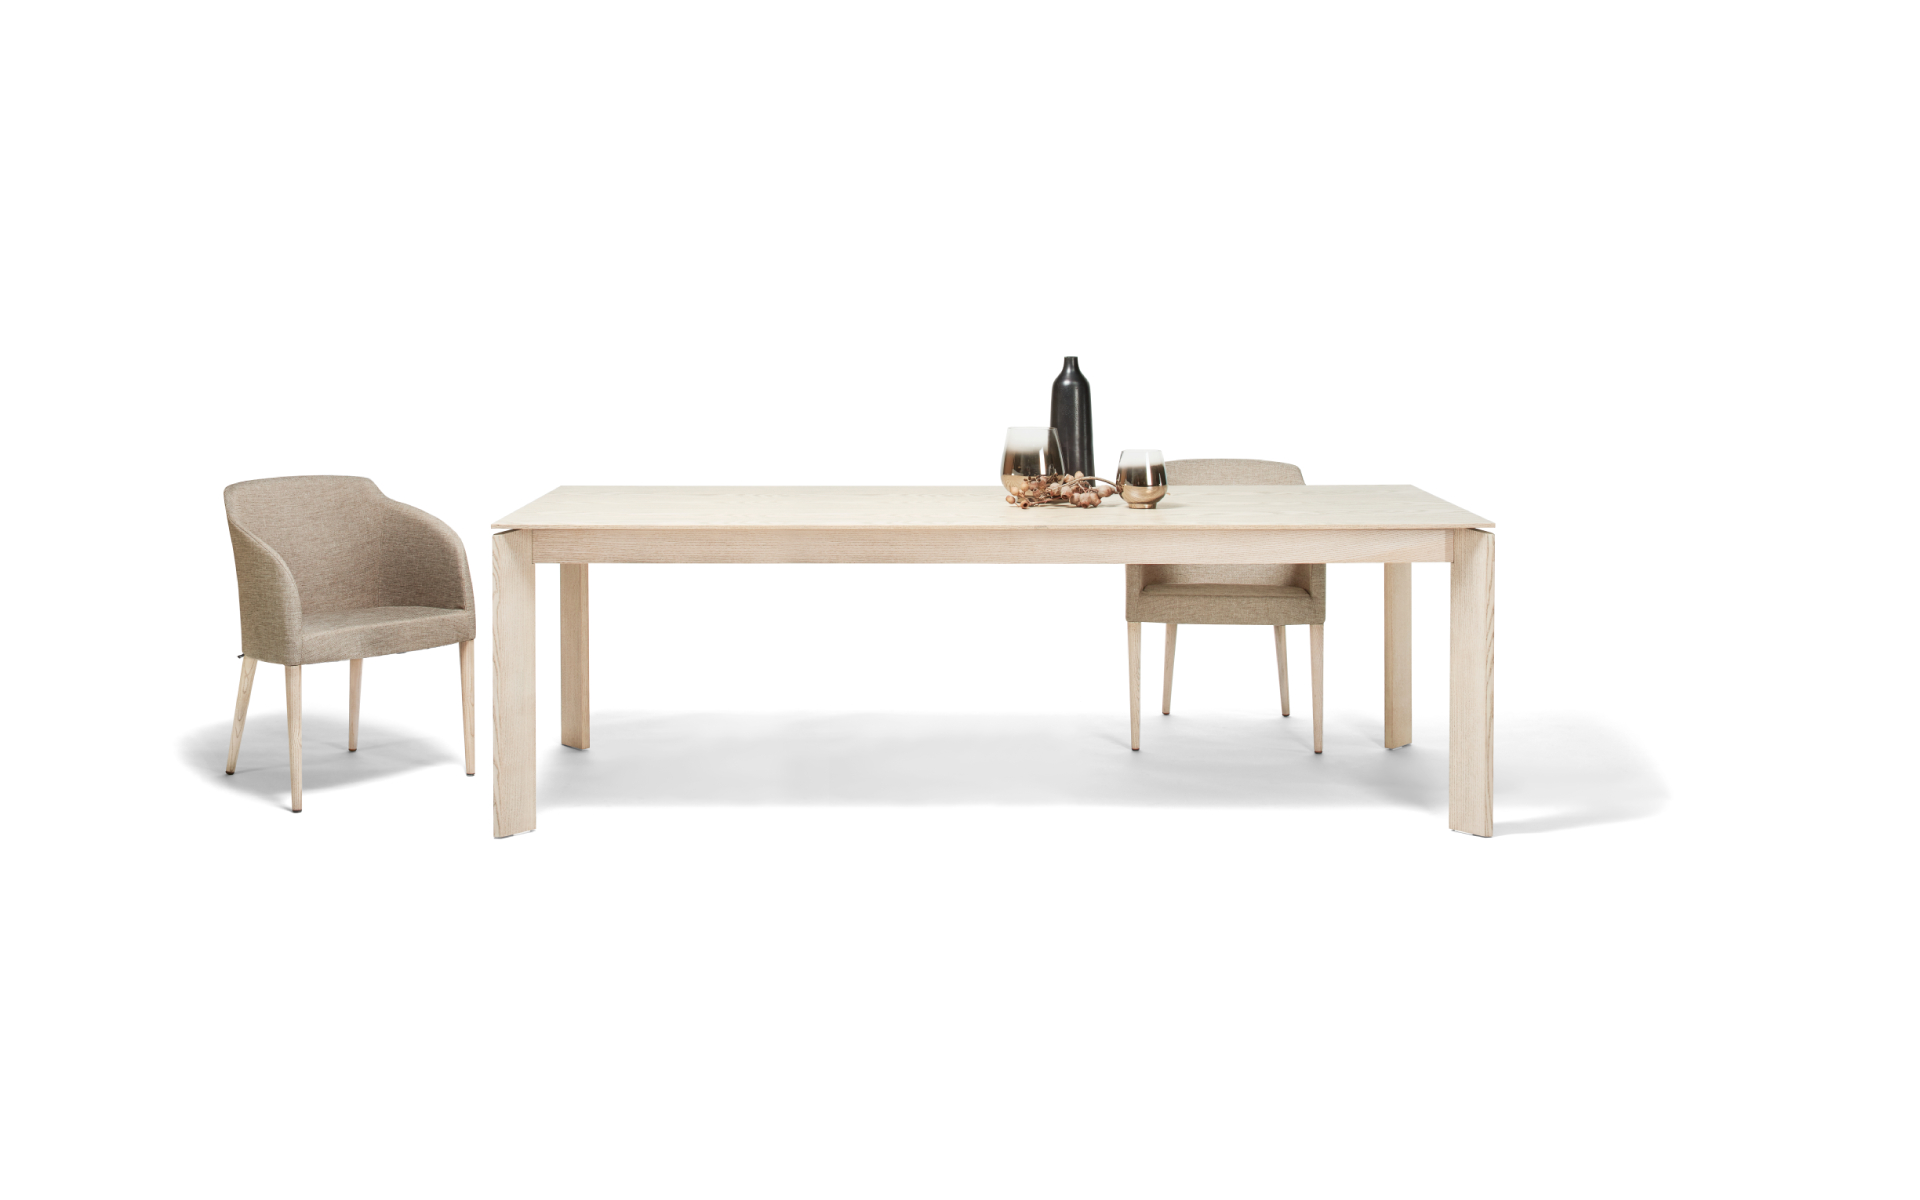 JS33 dining table